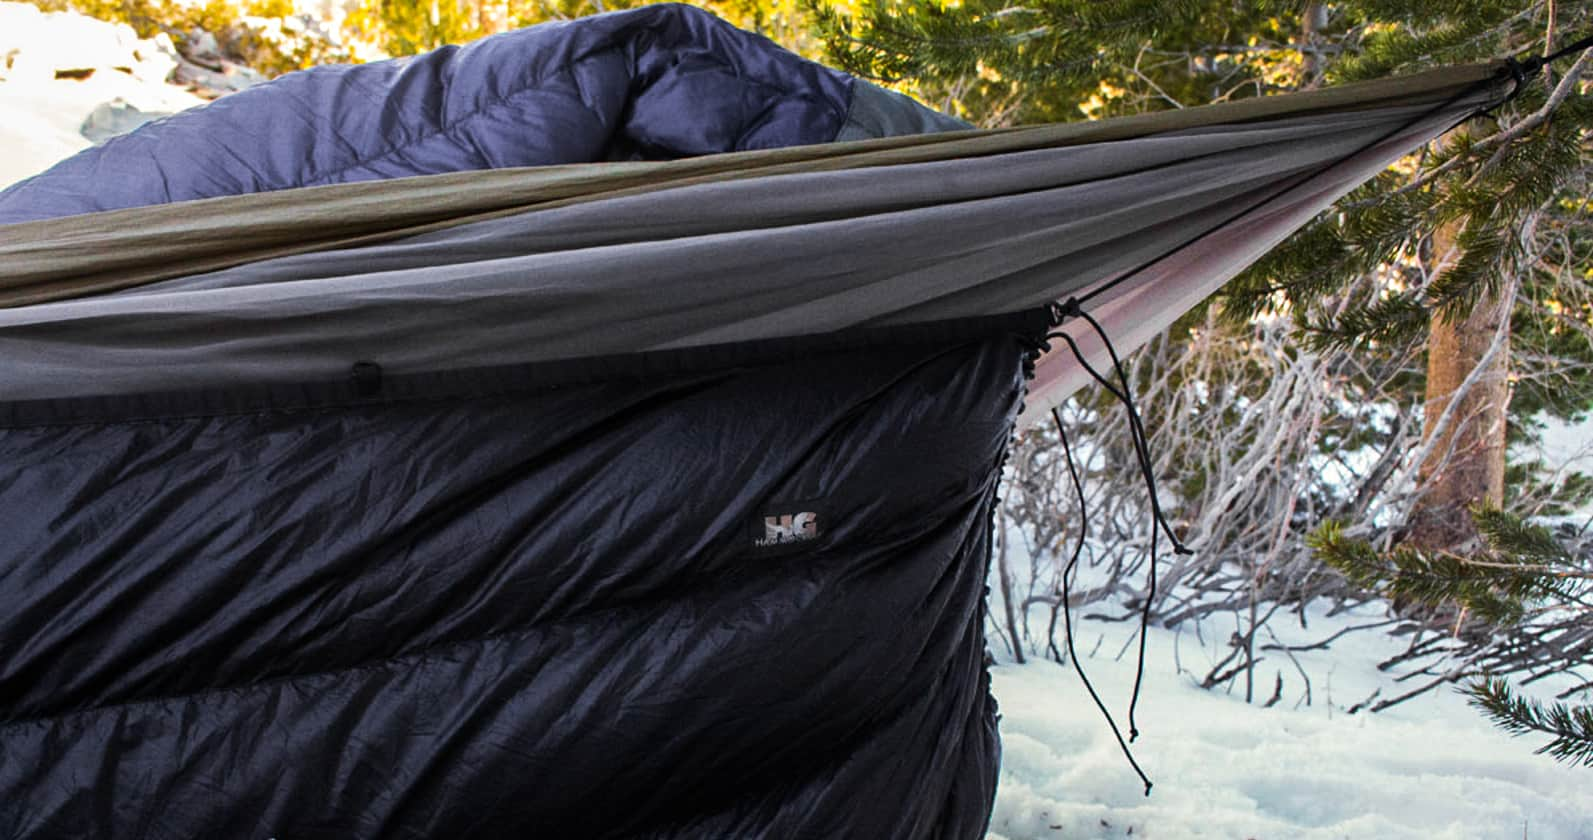 4 Camping 4 Clever Tricks To Stay Cozy While Hammock Camping Without An